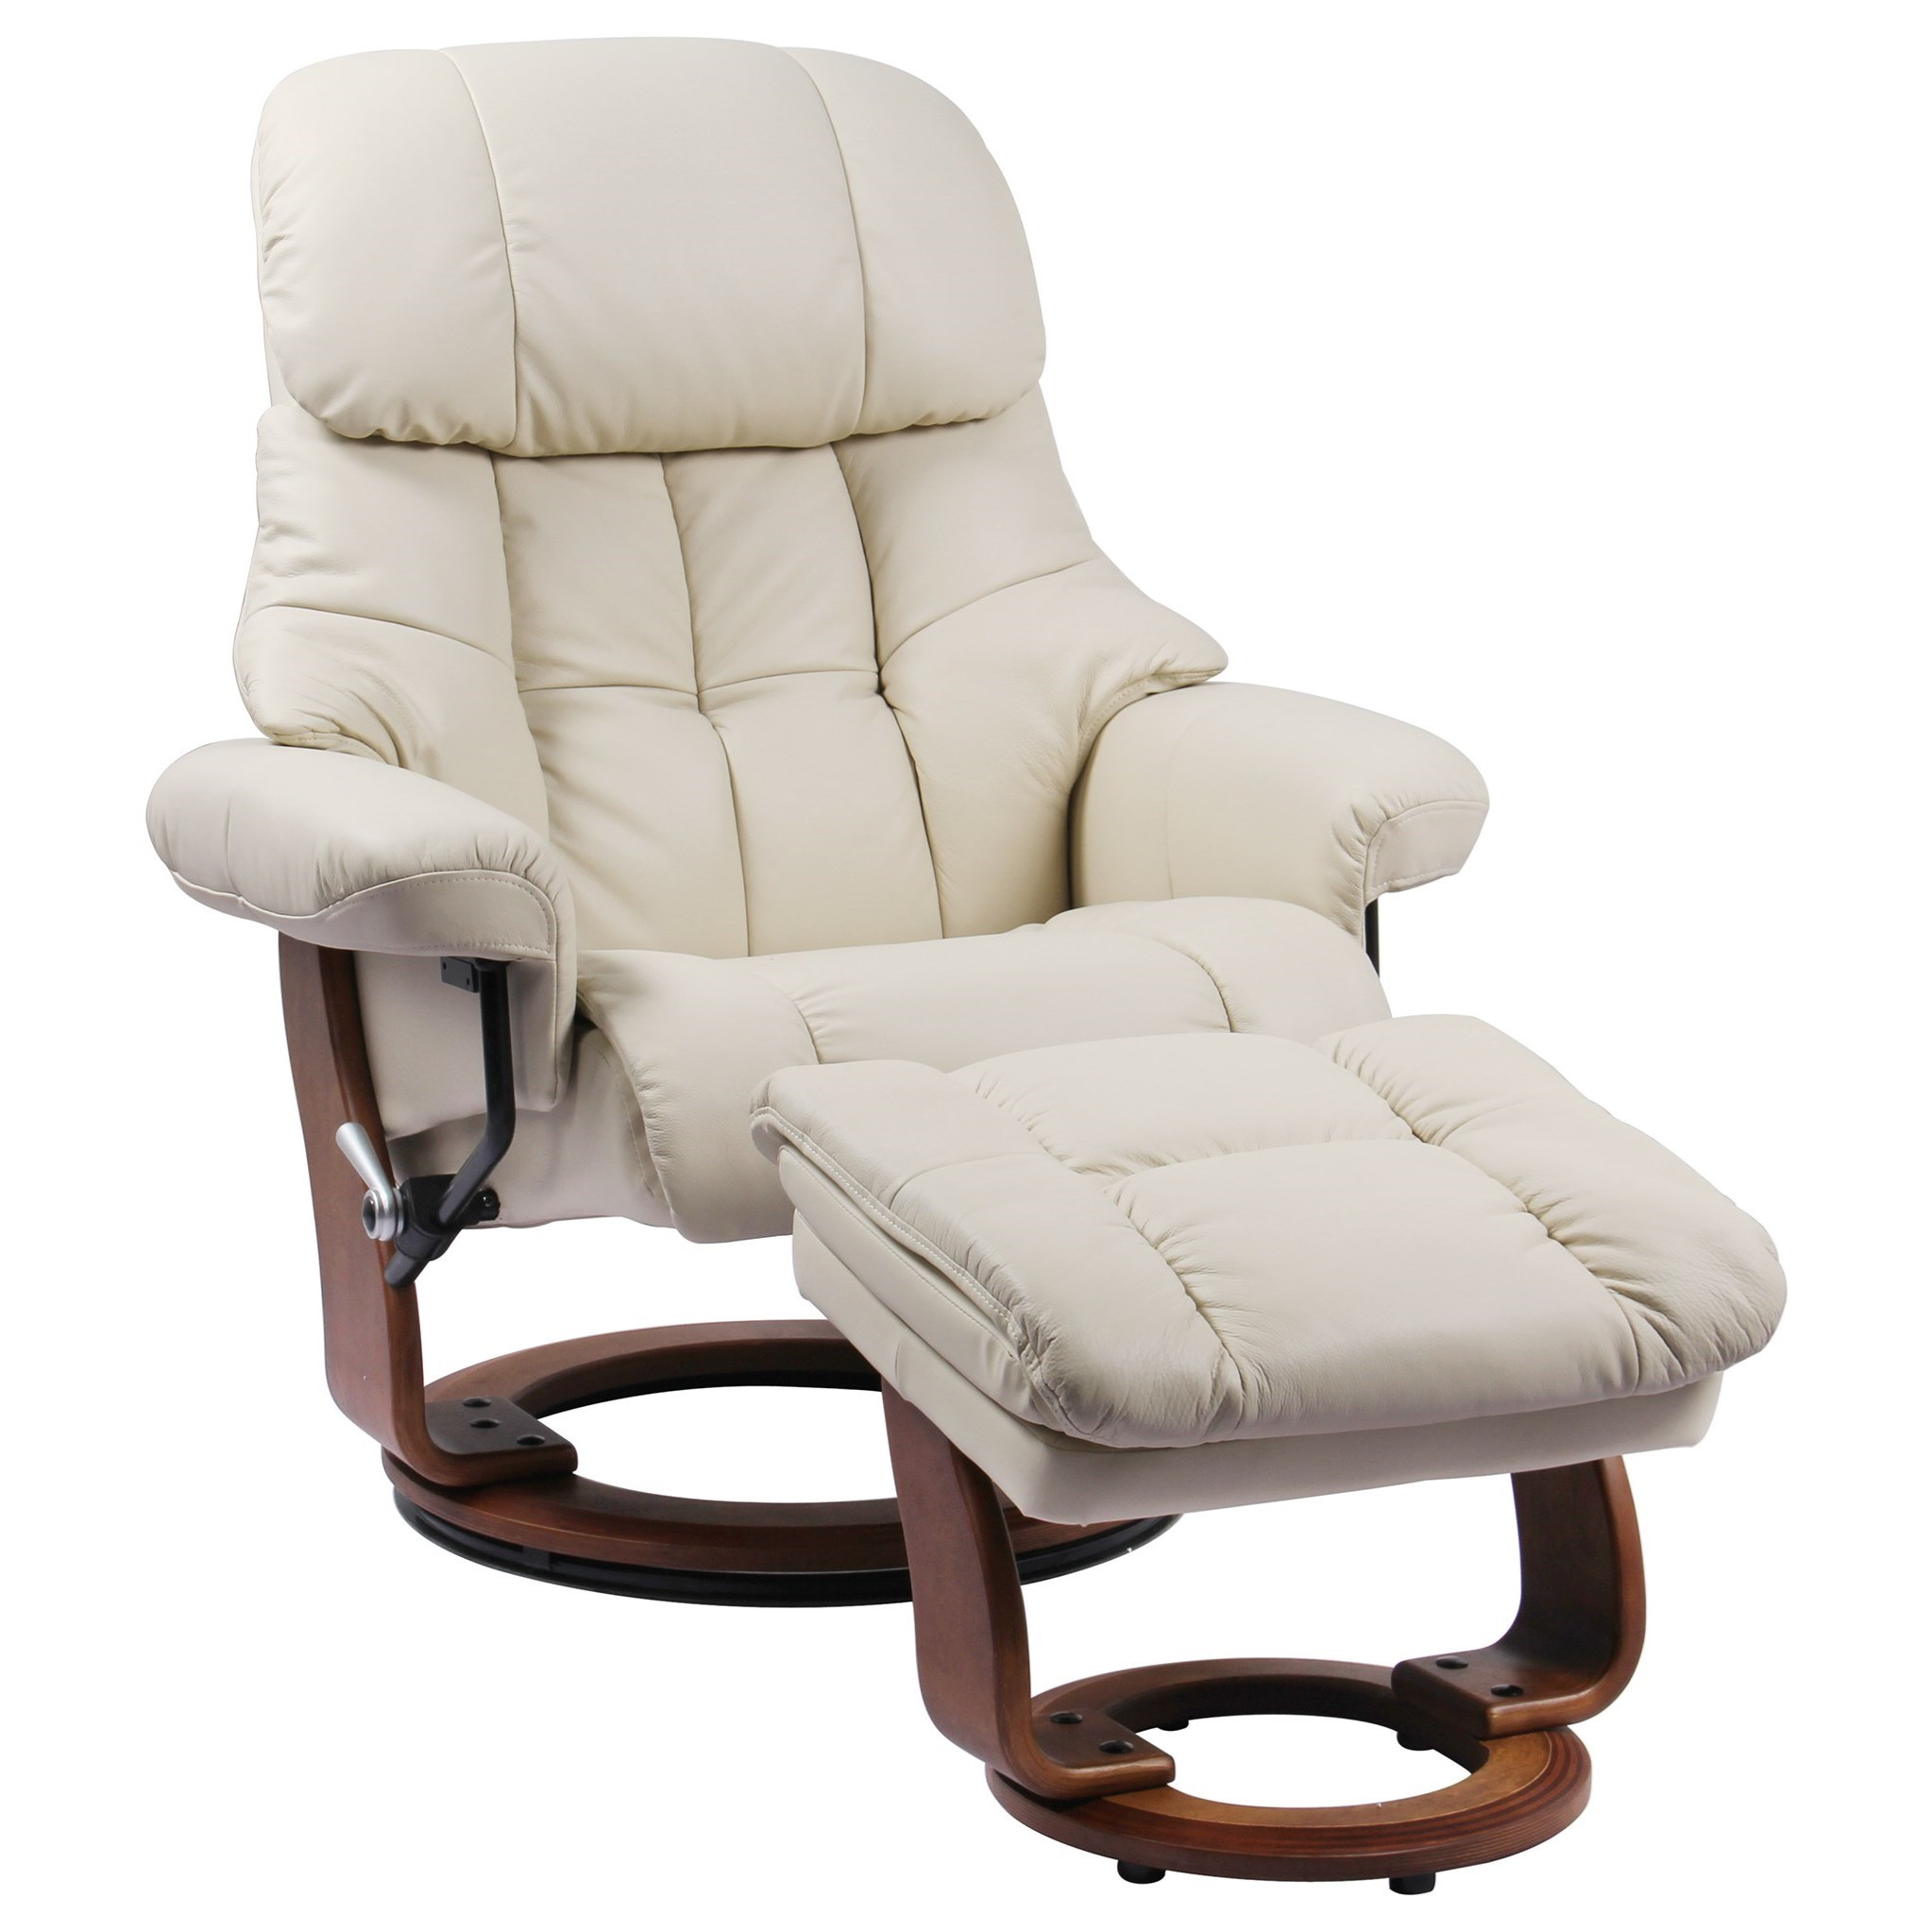 benchmaster nicholas ii casual lounger with builtin